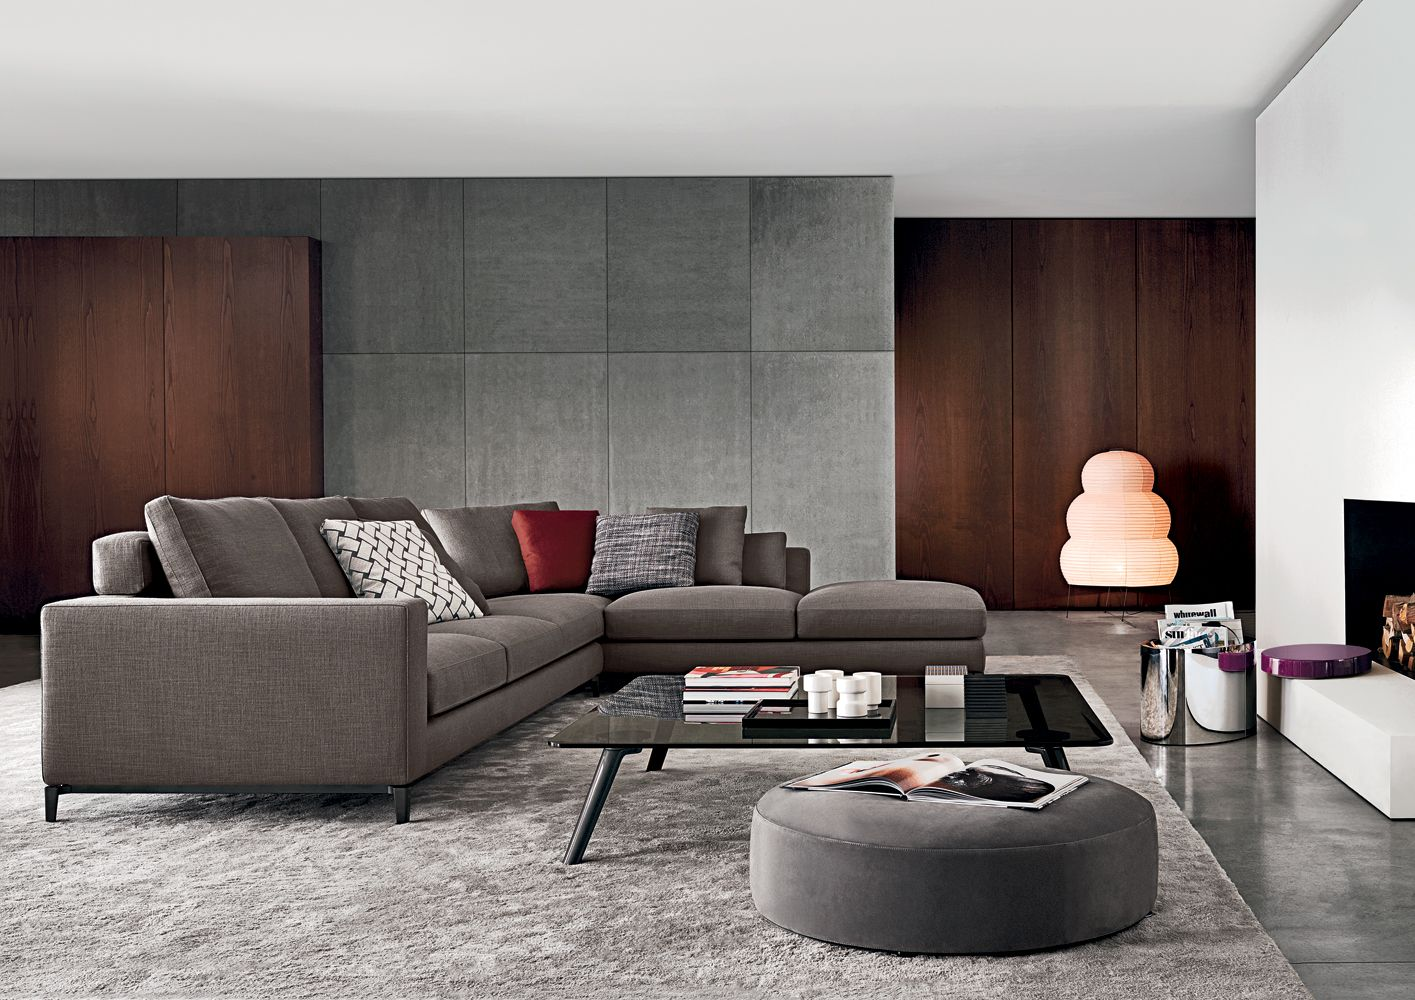 minotti living room картинки по запросу minotti bedroom modern interior 10669